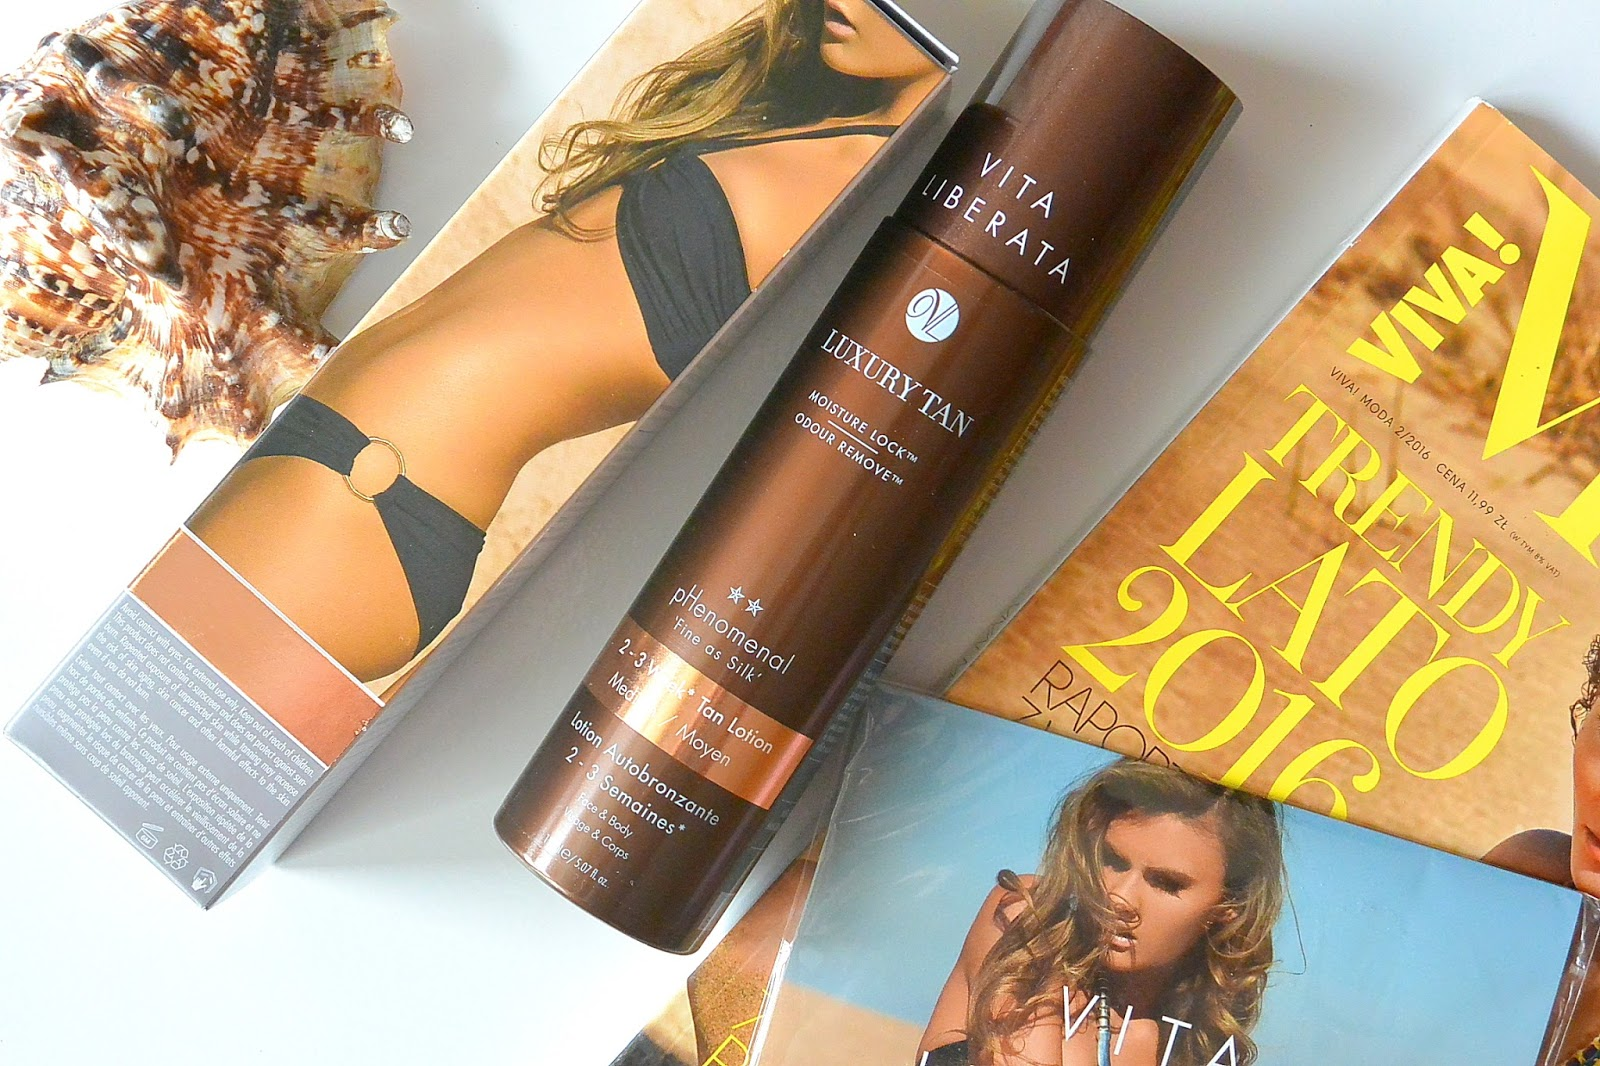 pHenomenal 2-3 week Self Tan Lotion Medium VITA LIBERATA | Samoopalacz idealny?